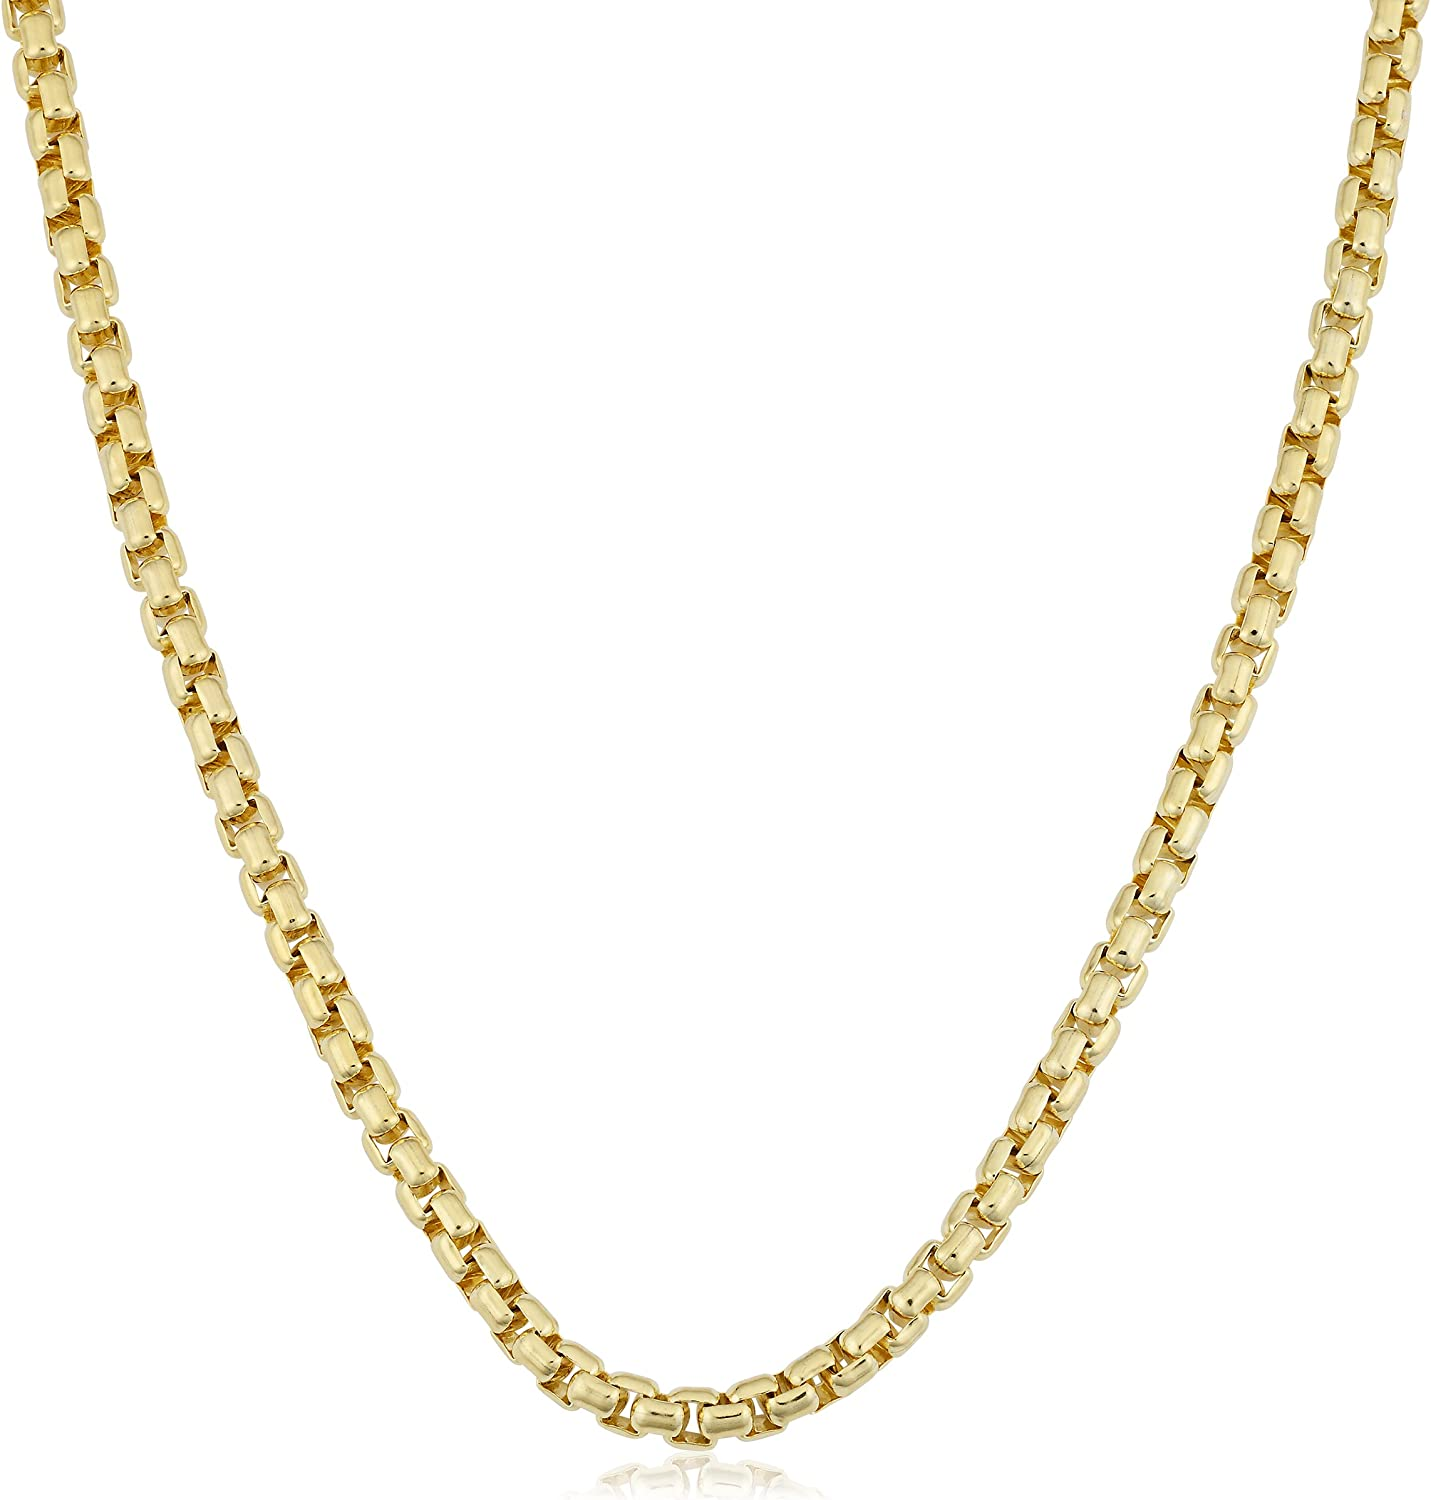 Kooljewelry 14k Yellow Gold Filled 3.5 mm Round Box Link Chain Necklace for Men Women